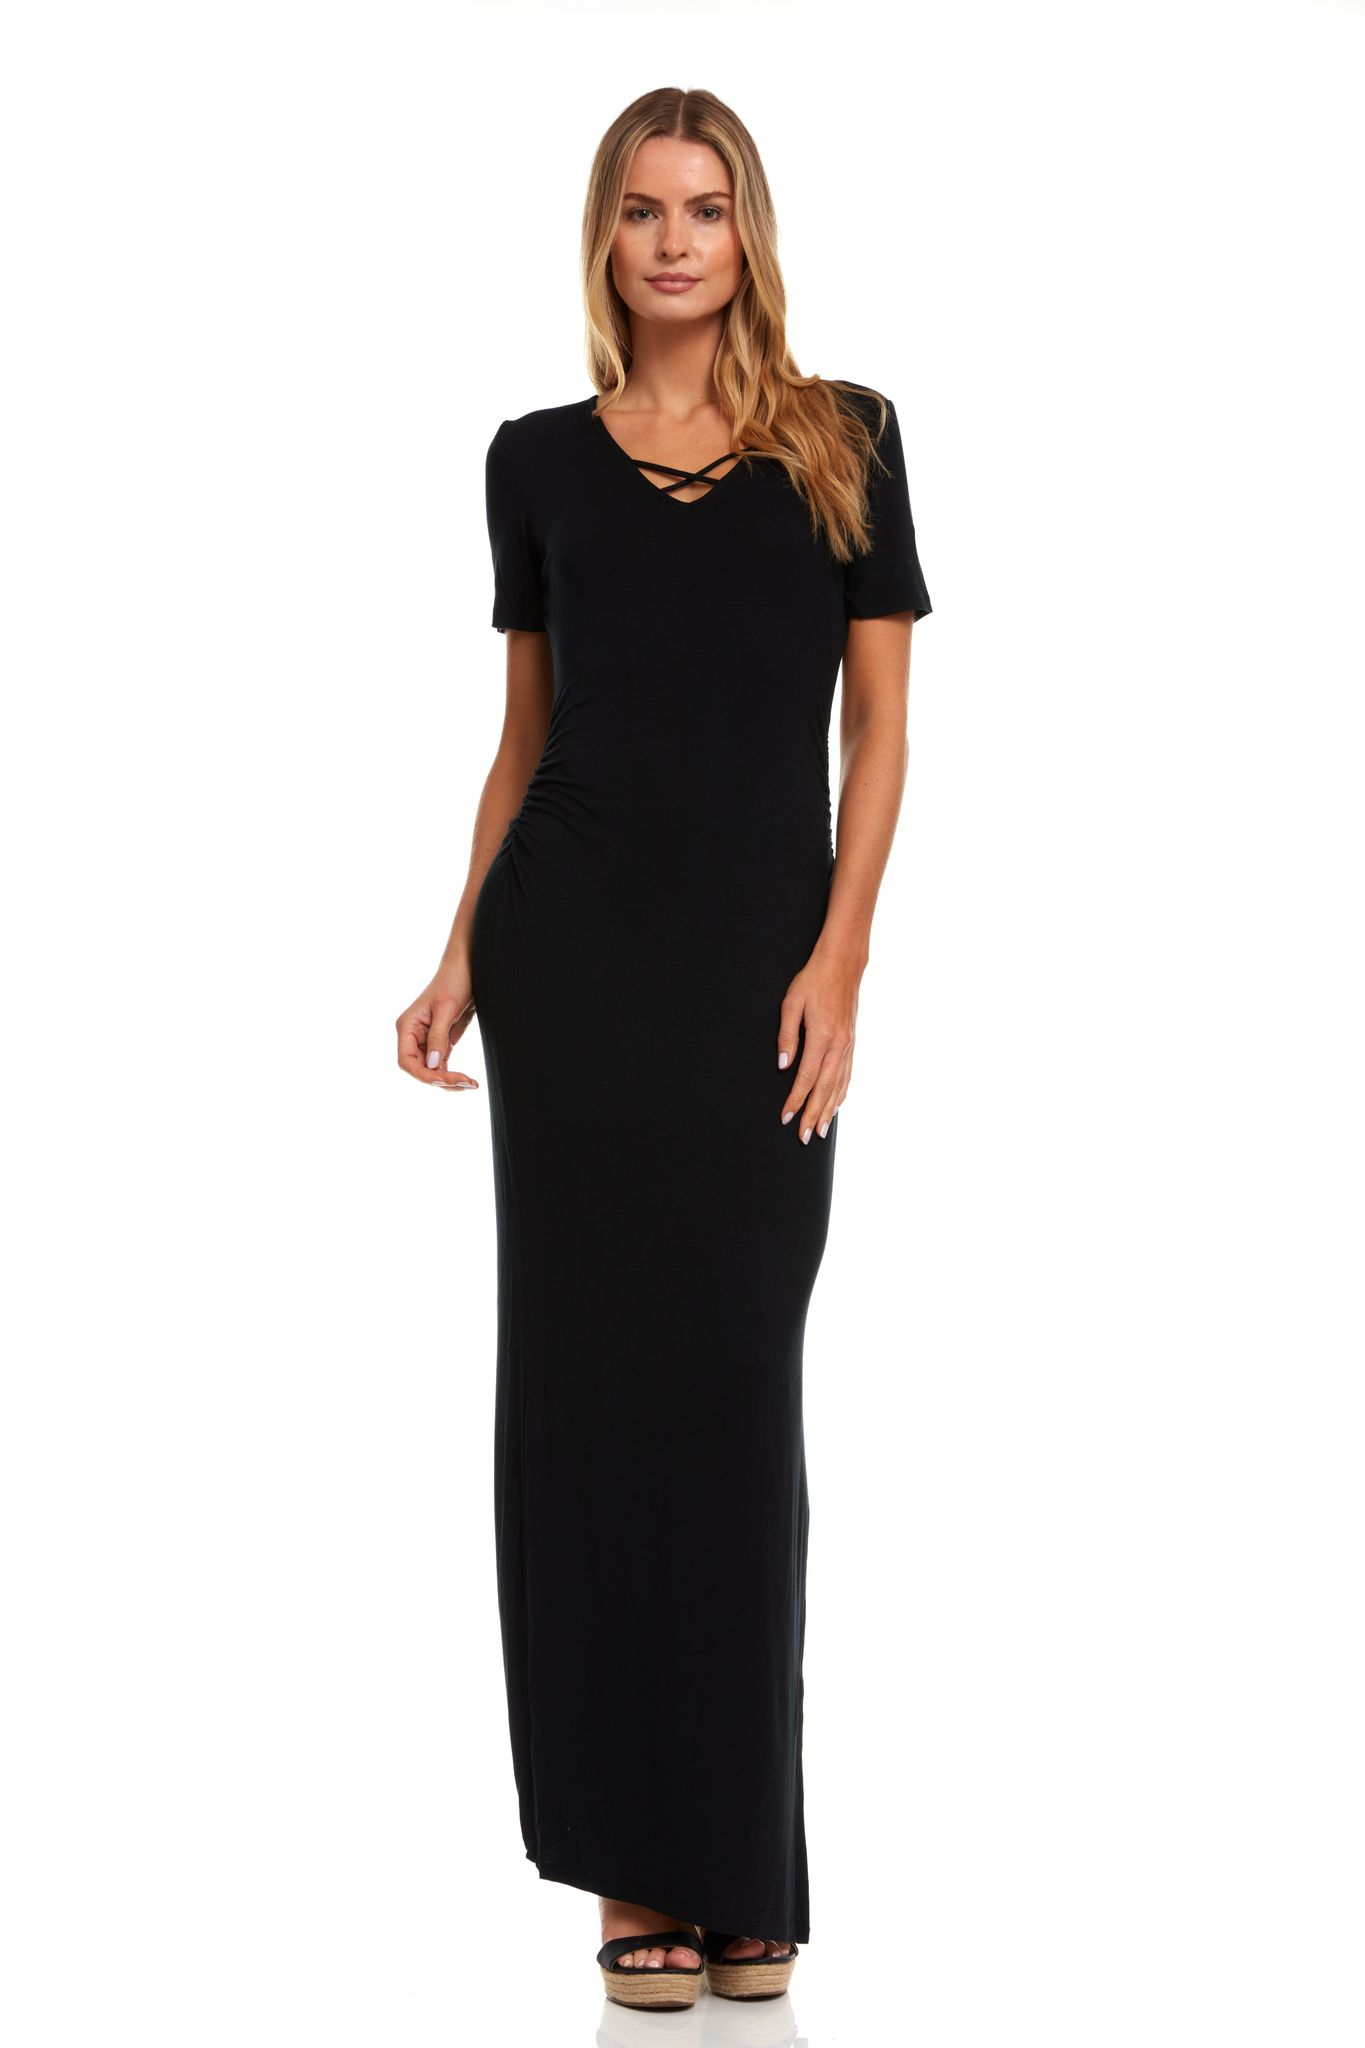 Rouched Side Maxi Dress with Criss-Cross Detail -Black - Front